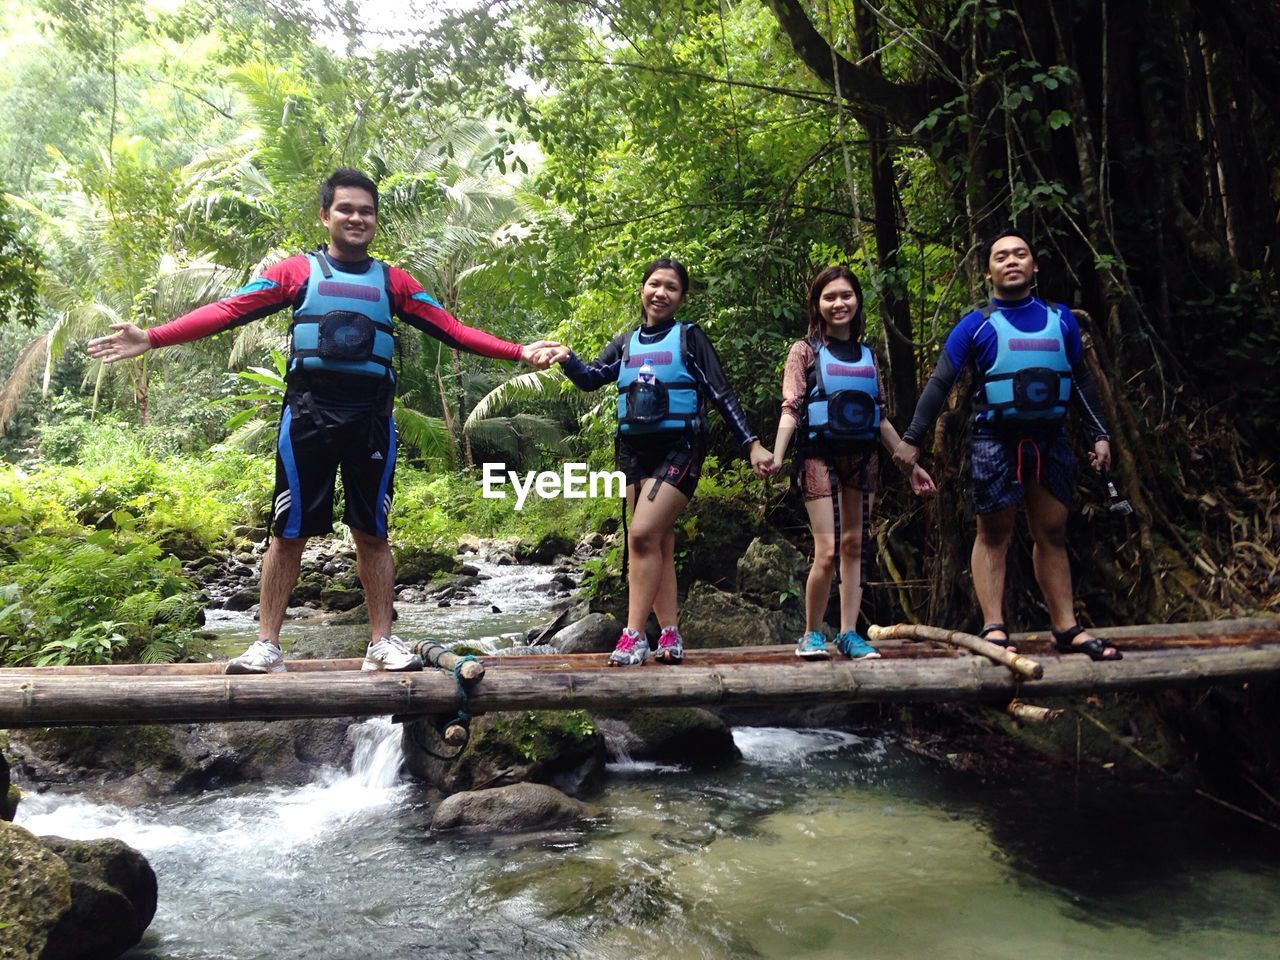 forest, full length, tree, adventure, day, friendship, front view, leisure activity, fun, outdoors, casual clothing, togetherness, enjoyment, water, vitality, young adult, looking at camera, nature, real people, standing, portrait, young women, happiness, vacations, people, healthy lifestyle, smiling, teamwork, adult, adults only